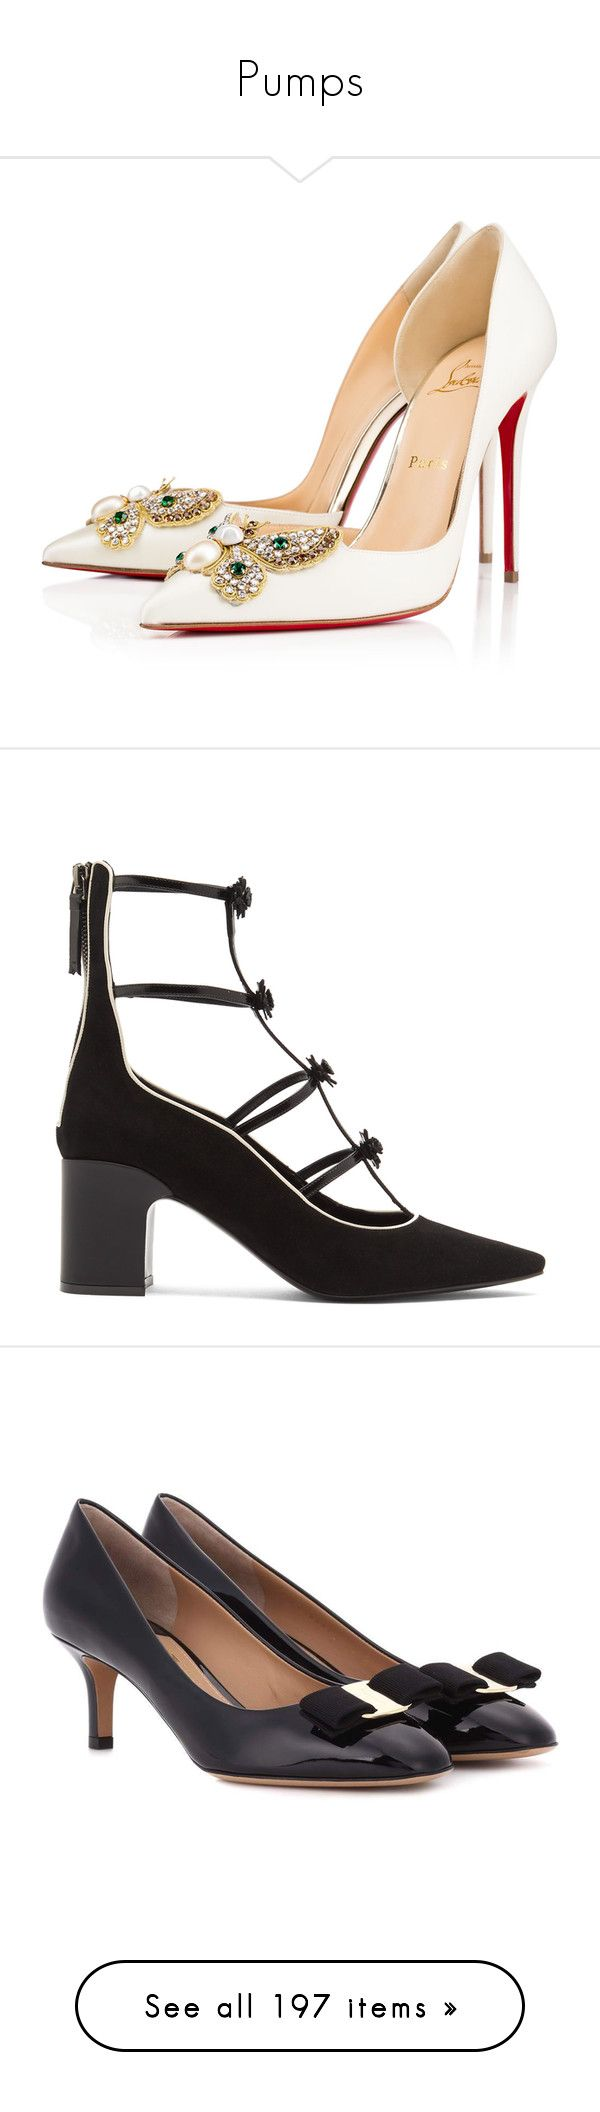 """""""Pumps"""" by ngkhhuynstyle ❤ liked on Polyvore featuring shoes, pumps, heels, christian louboutin, sapato, off white, high heel pumps, high heel court shoes, high heel shoes and special occasion shoes"""